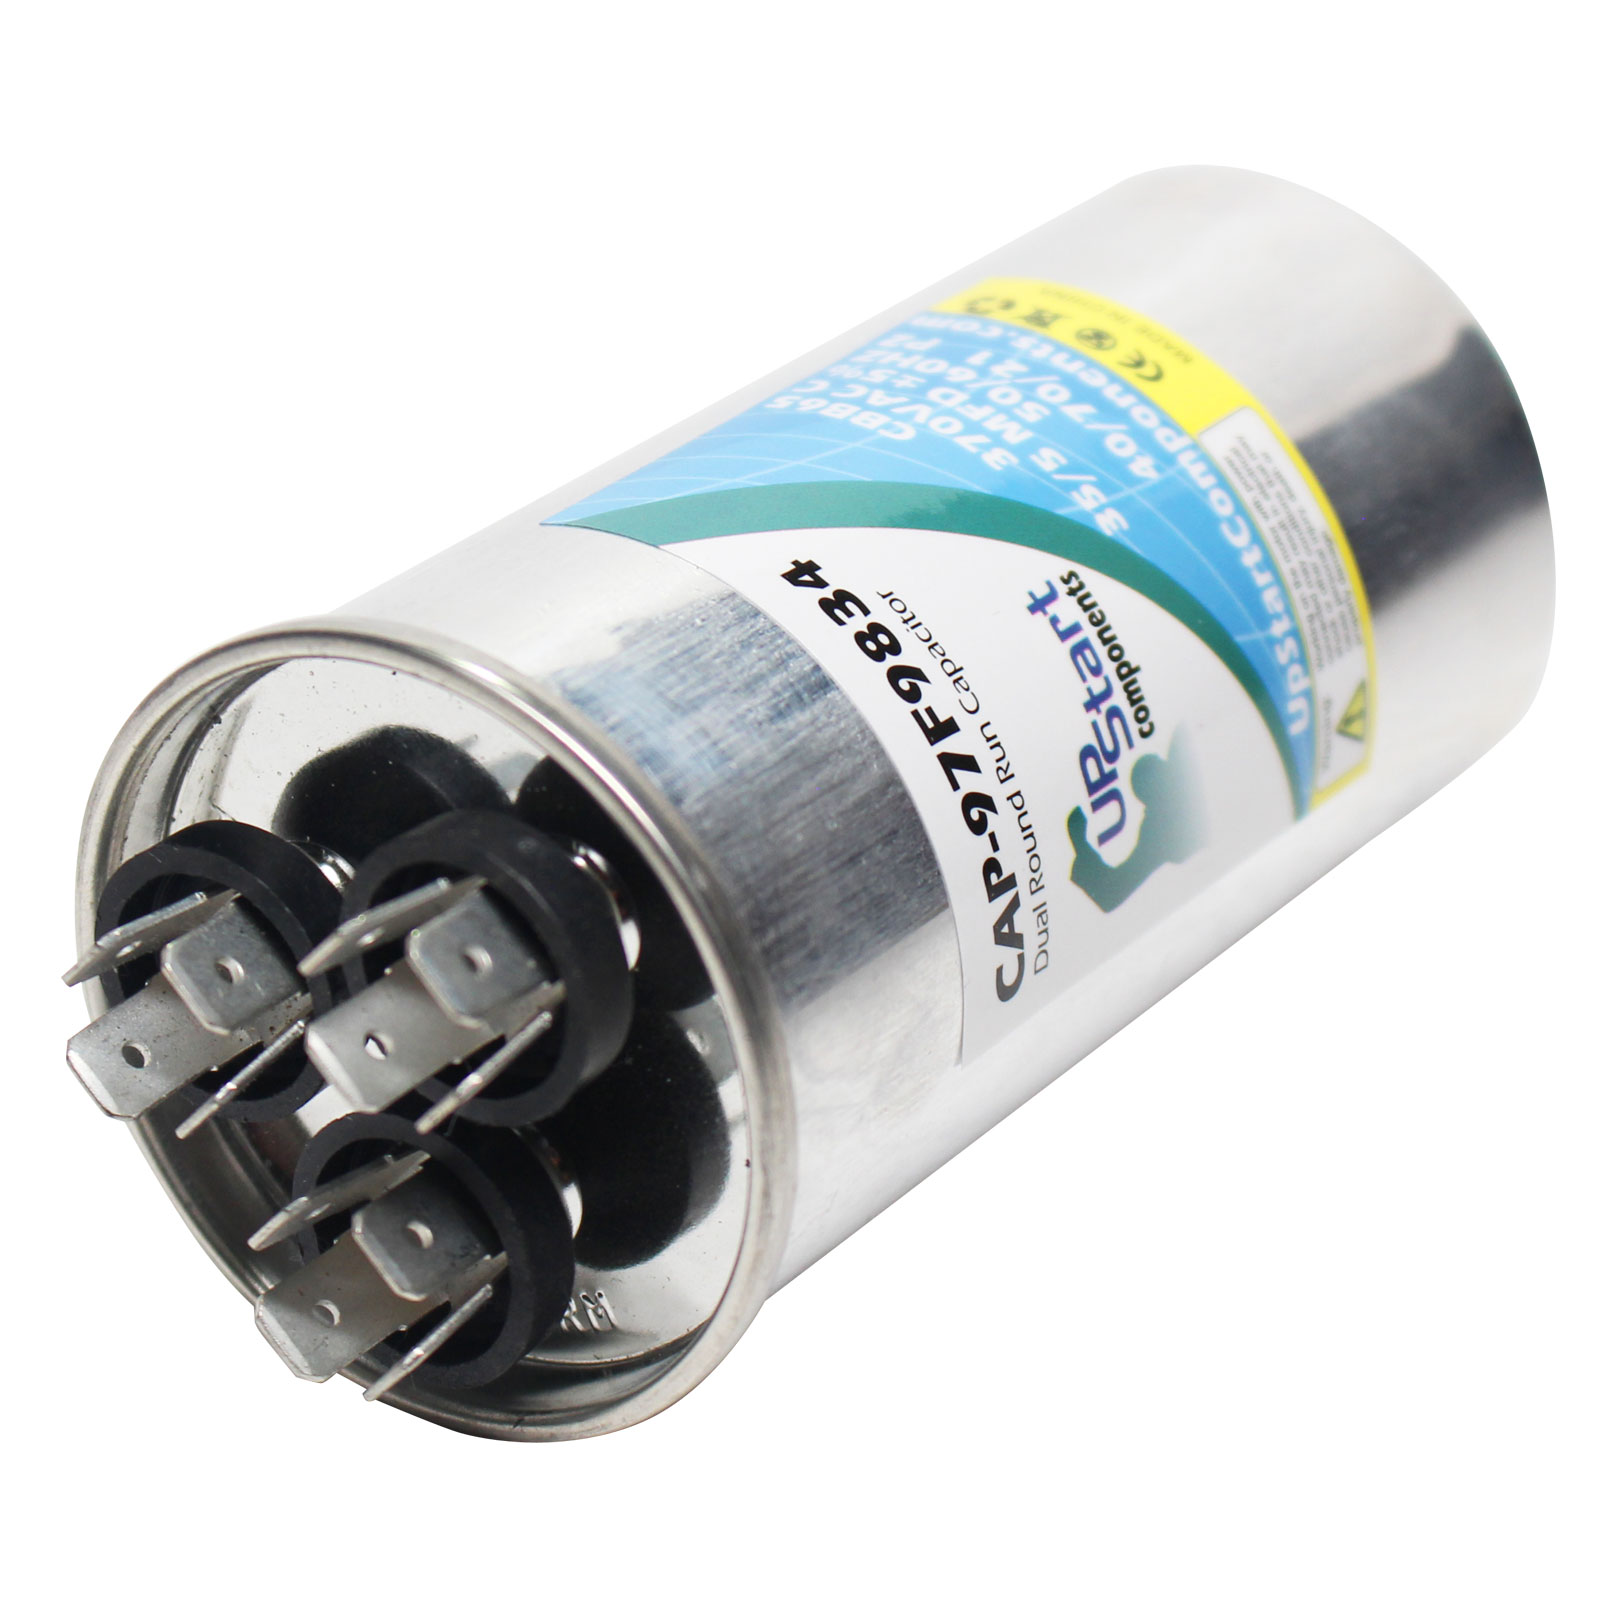 4x 35//5 MFD 370 Volt Dual Round Run Capacitor for Carrier 38CKC030340 38TKB02431